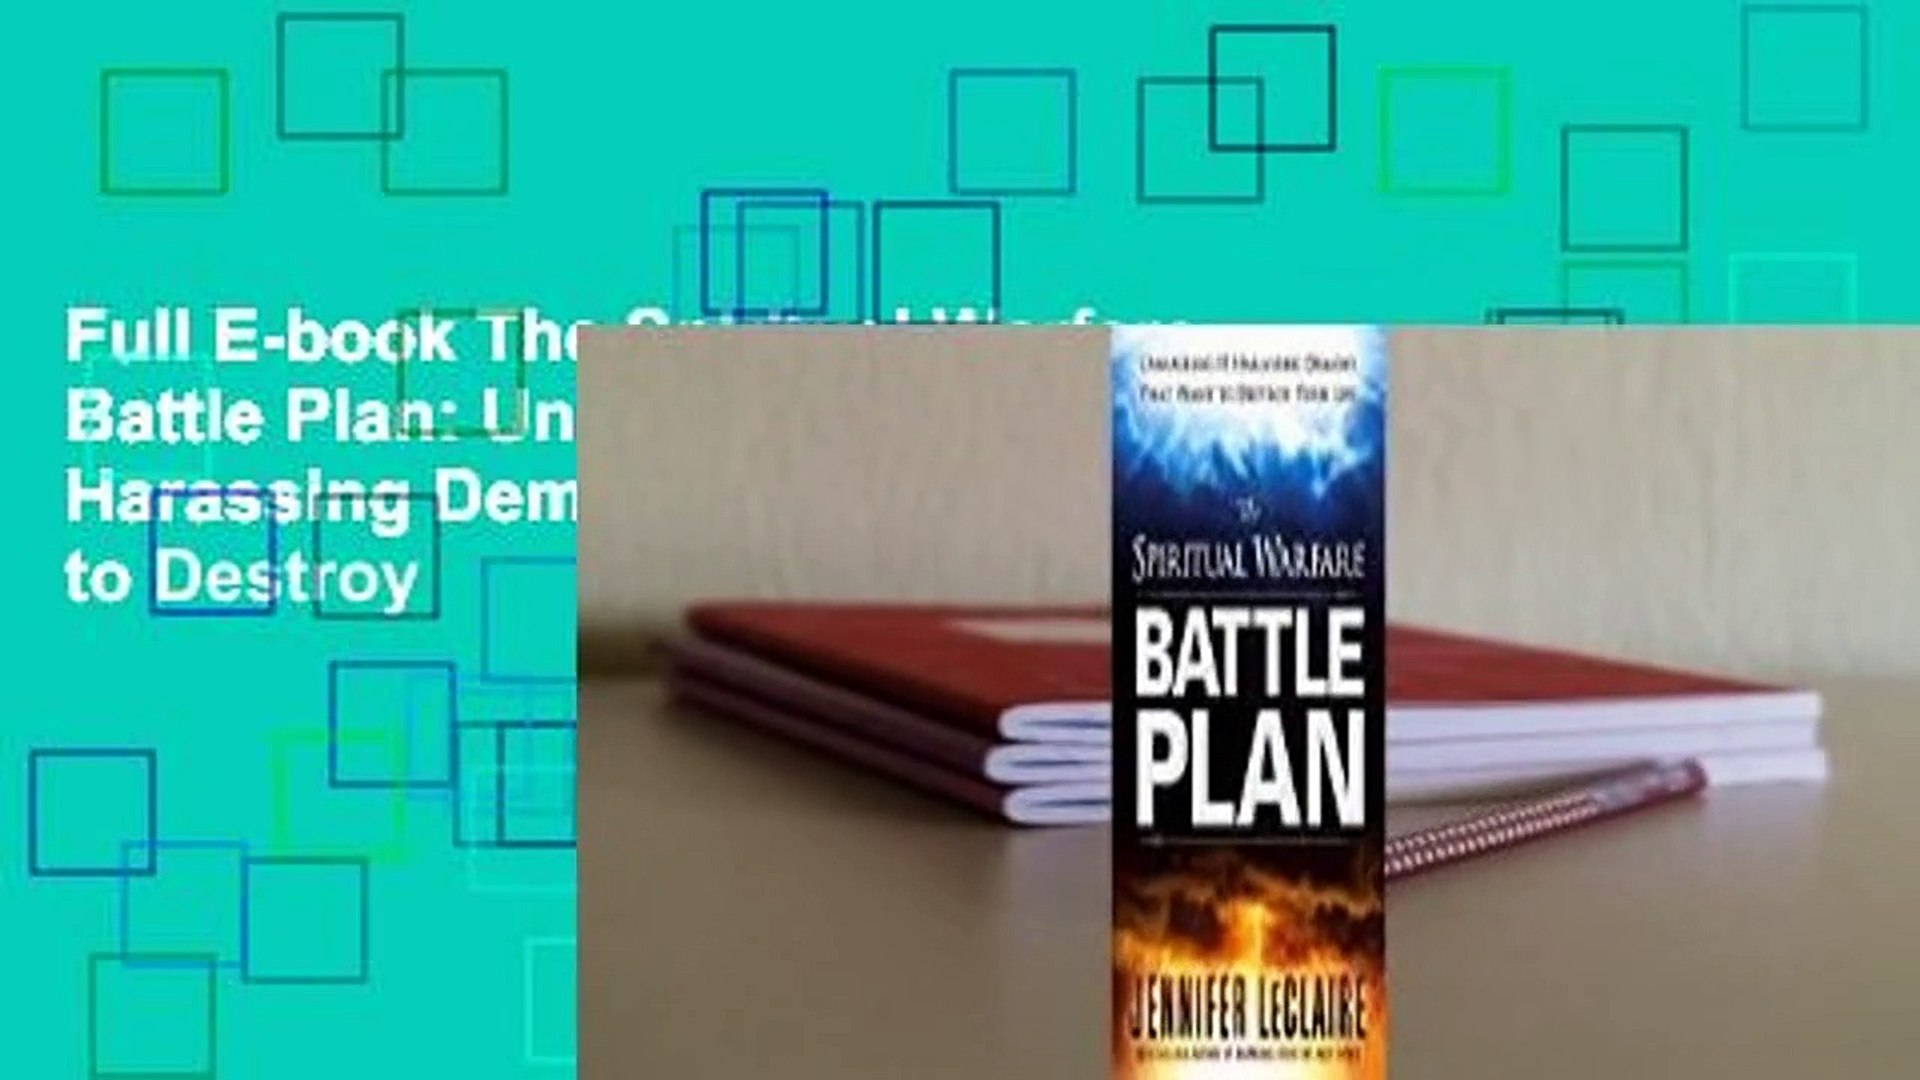 Full E-book The Spiritual Warfare Battle Plan: Unmasking 15 Harassing Demons That Want to Destroy